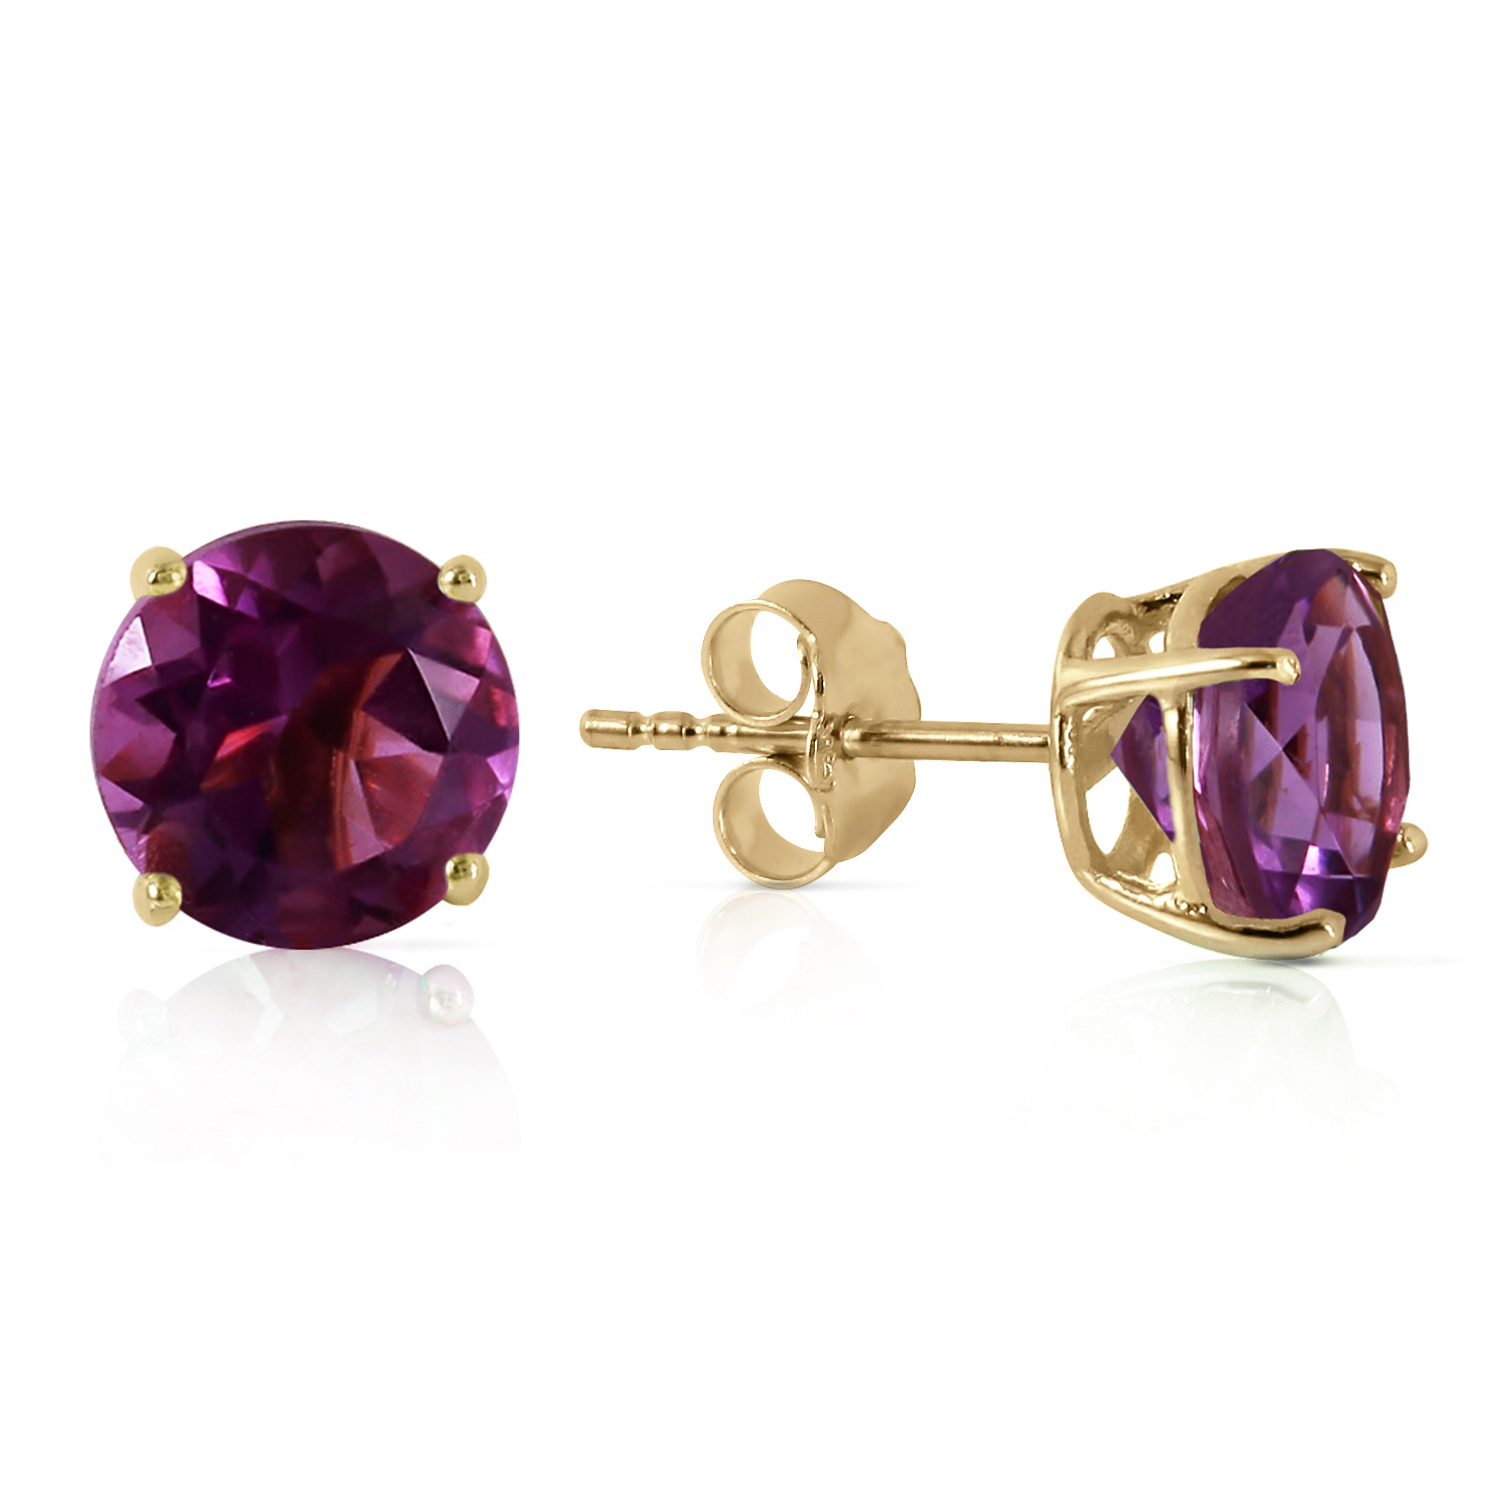 3 1 ctw 14k solid gold no discord amethyst earrings ebay. Black Bedroom Furniture Sets. Home Design Ideas